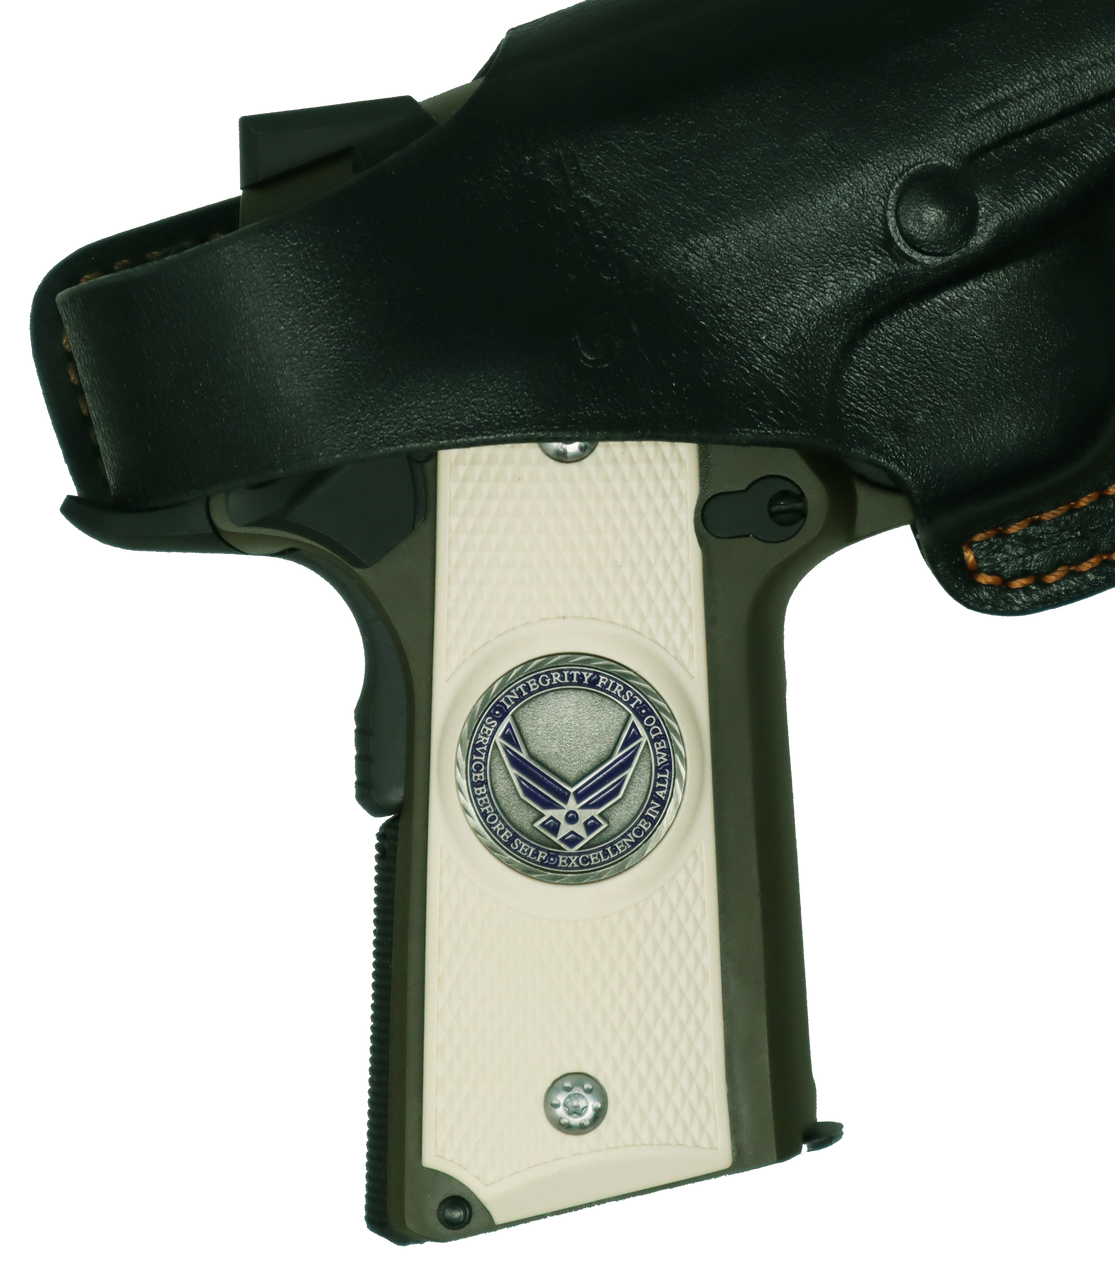 Garrison Grip 1911 Colt Full Size and Clones with US AIR Force Pewter Medallion Set in Light Ivory Color ABS Grips